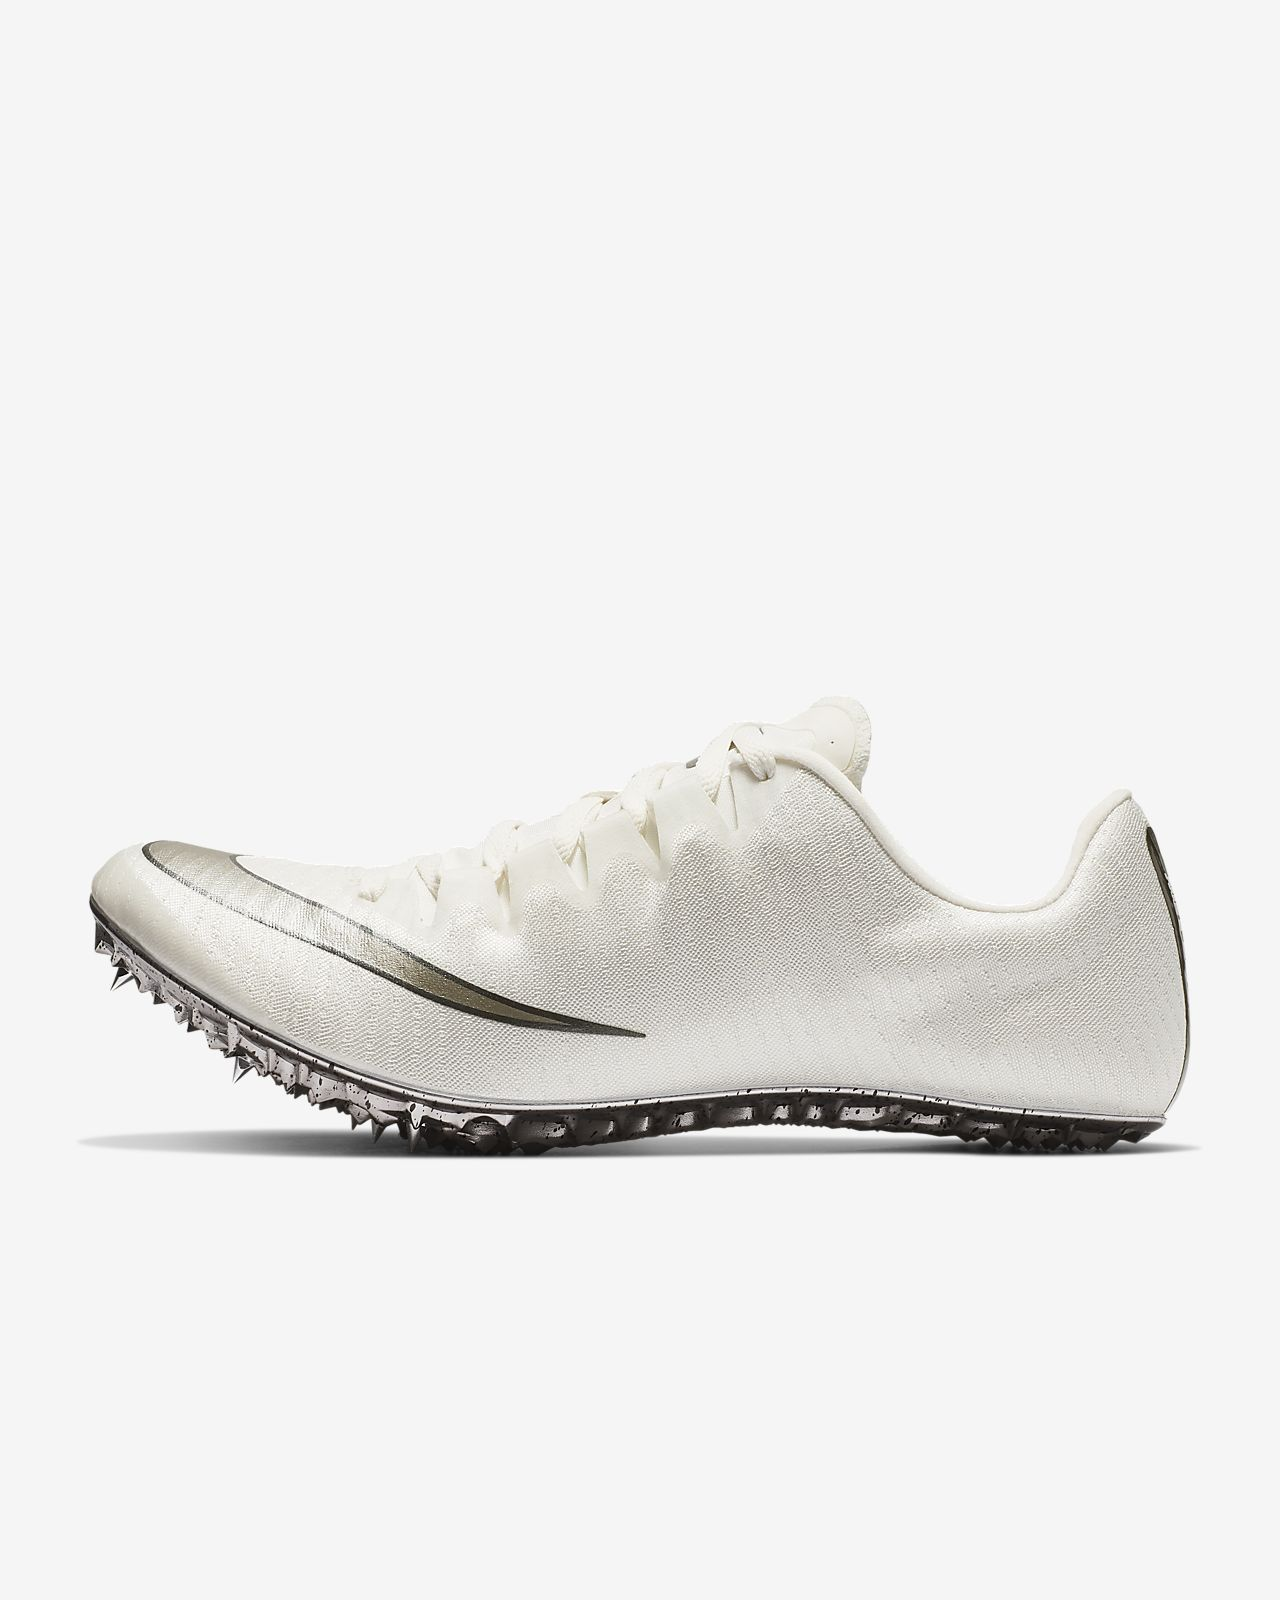 buy popular bf84c 9595a ... Chaussure de course à pointes Nike Superfly Elite